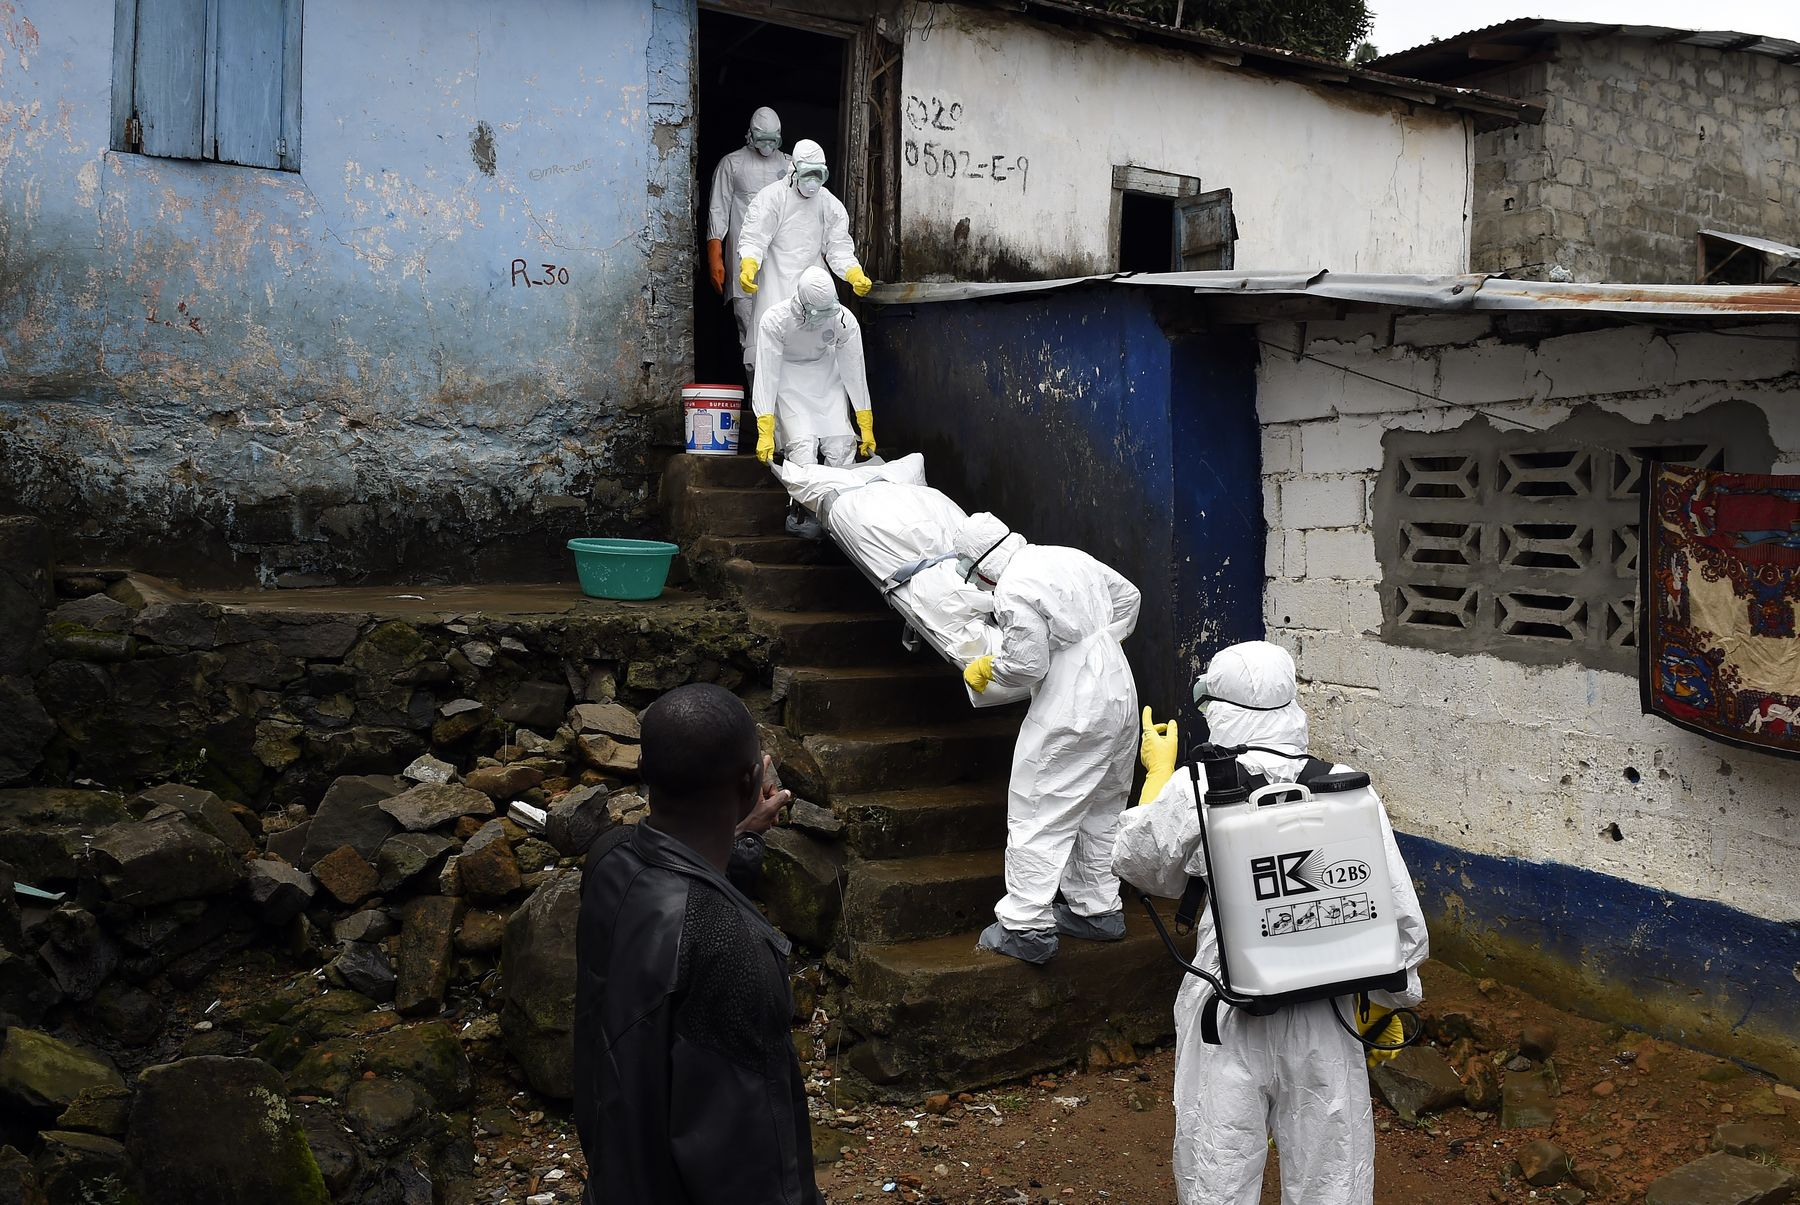 Medical staff remove the corpse of an Ebola victim from a house in Monrovia, Liberia.